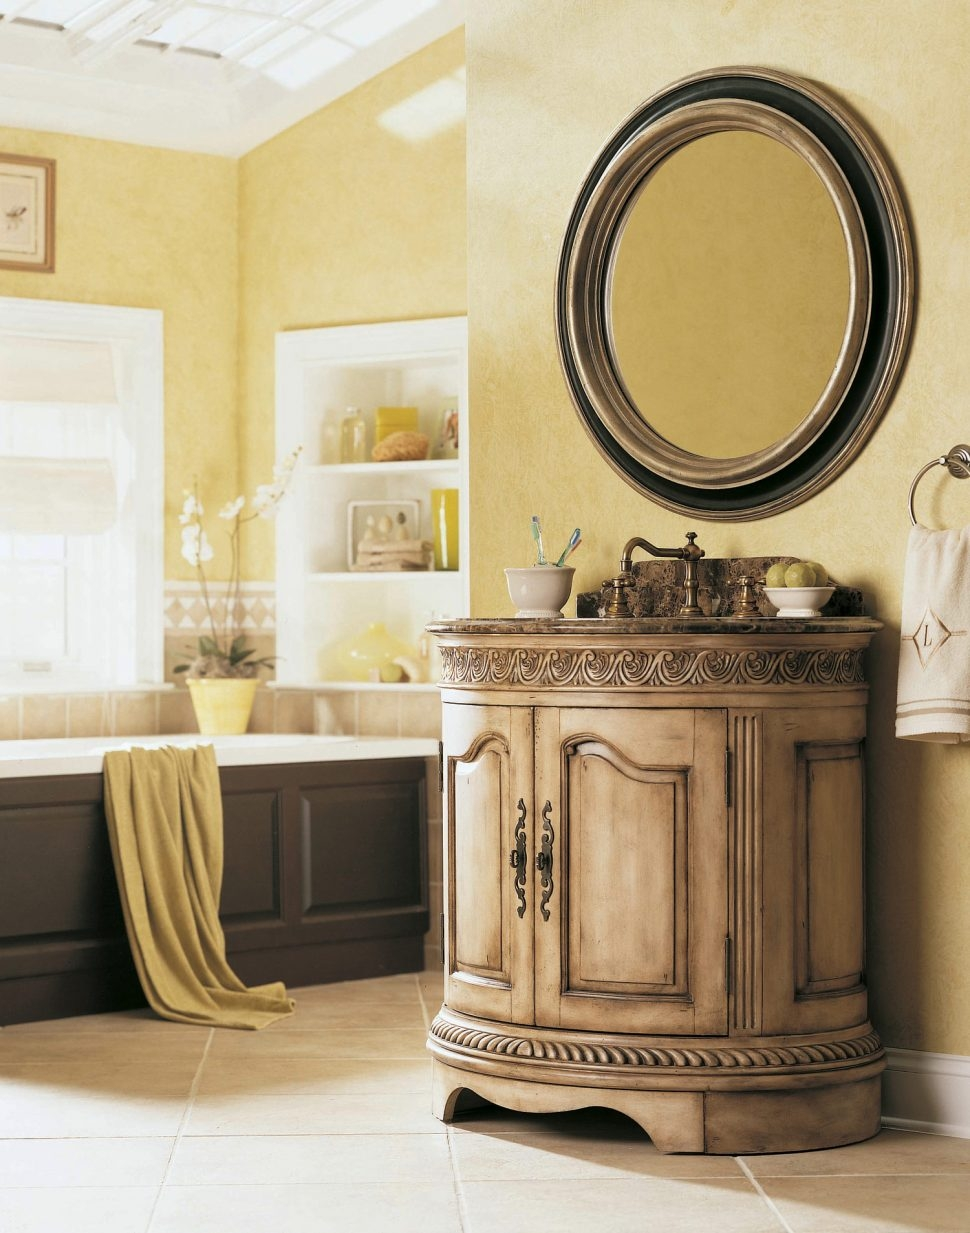 Bathroom Design Hooker Bathroom Furniture Pictures Shab Chic With Round Shabby Chic Mirror (Image 3 of 15)